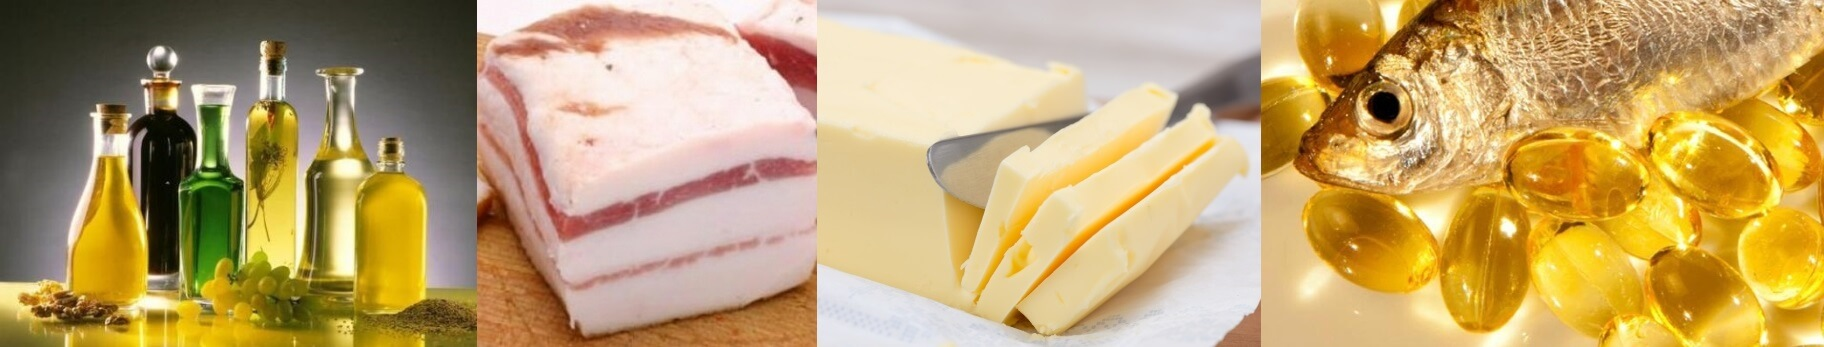 sources of saturated and unsaturated fats